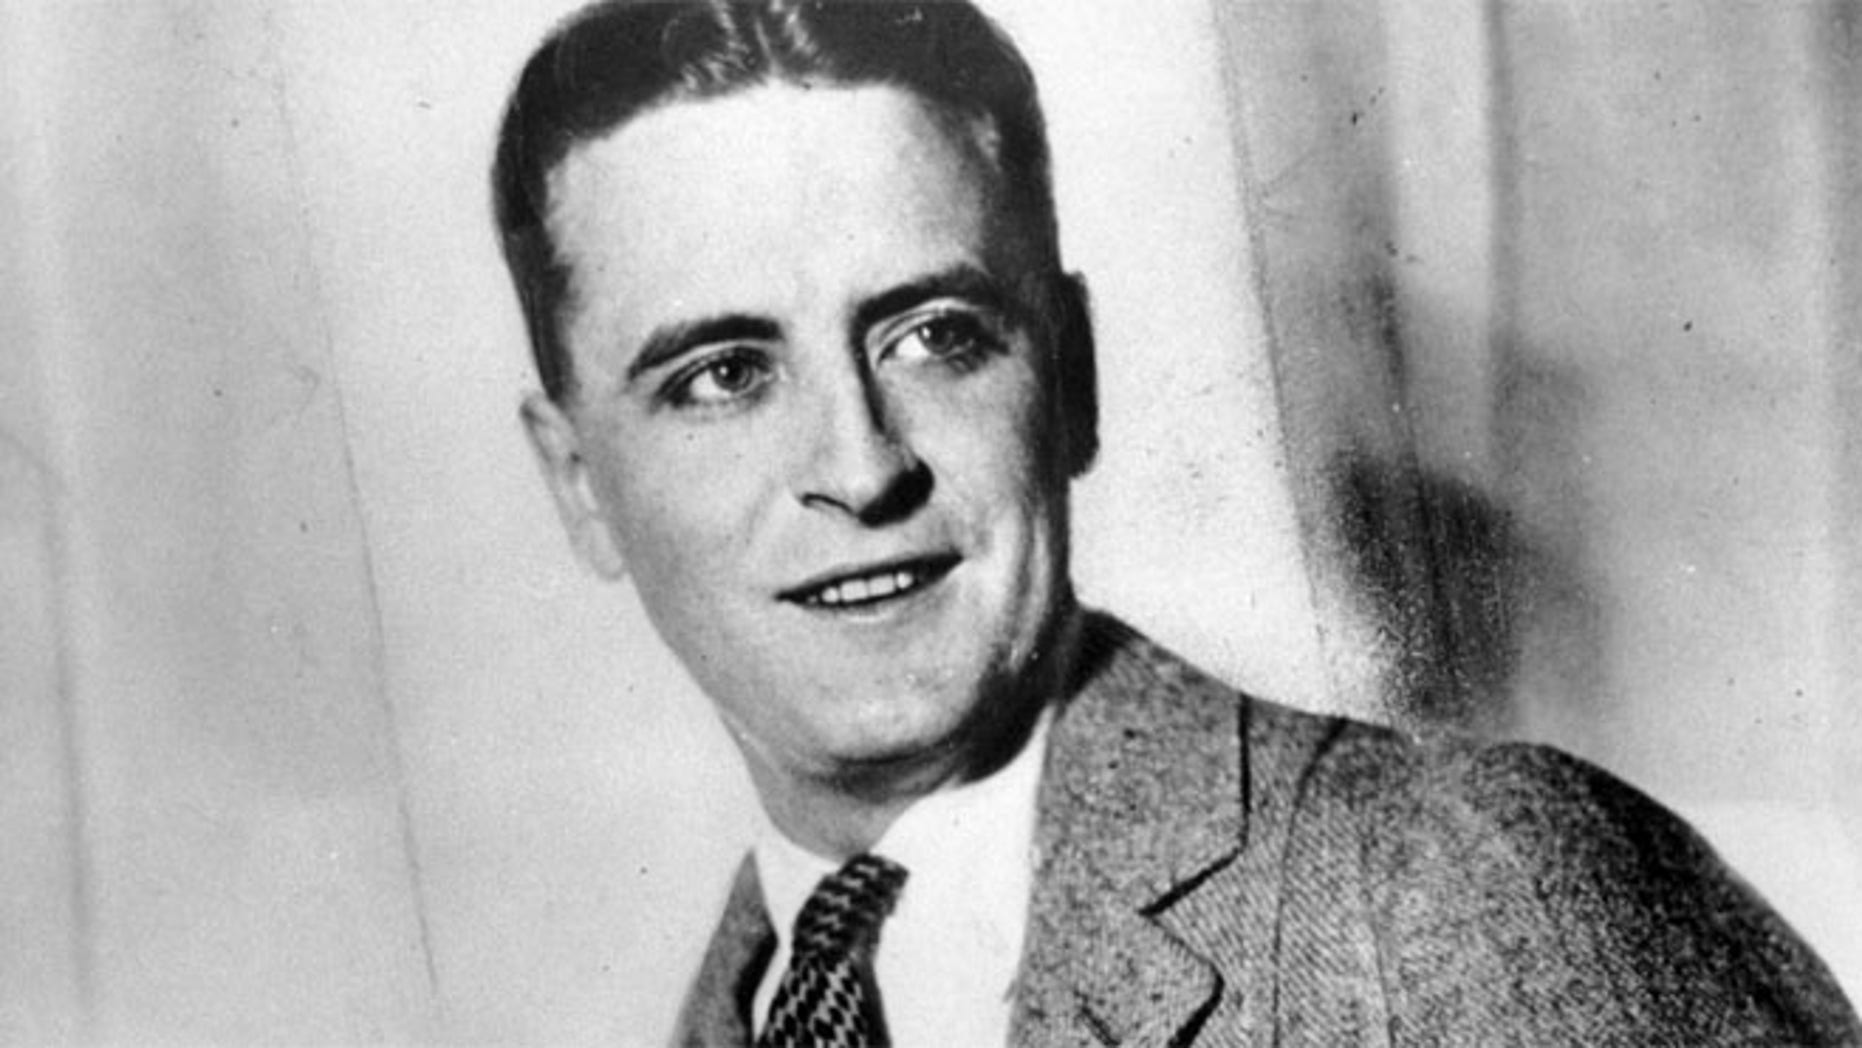 F. Scott Fitzgerald is known for such classics as 'The Great Gatsby' and 'This Side of Paradise.'